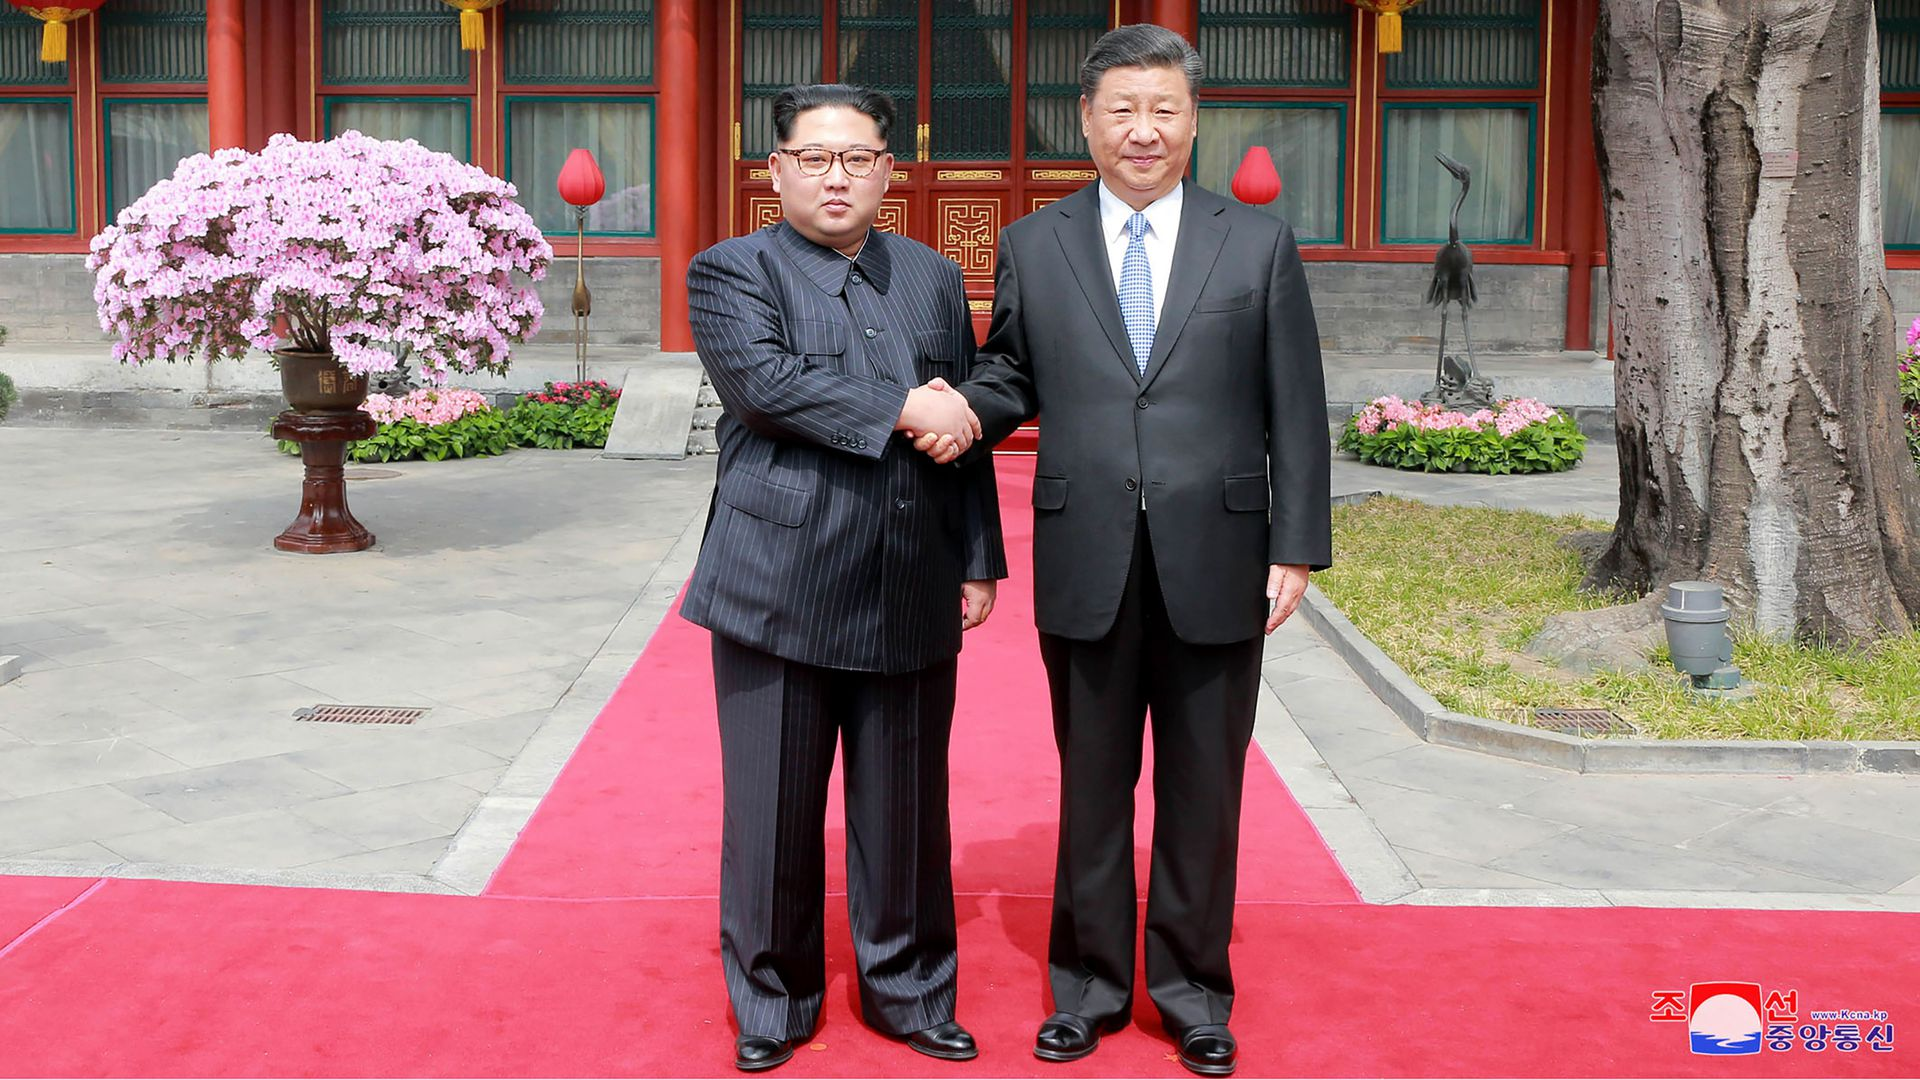 Kim Jong-un and Xi Jinping are shaking hands in the middle of the photo.